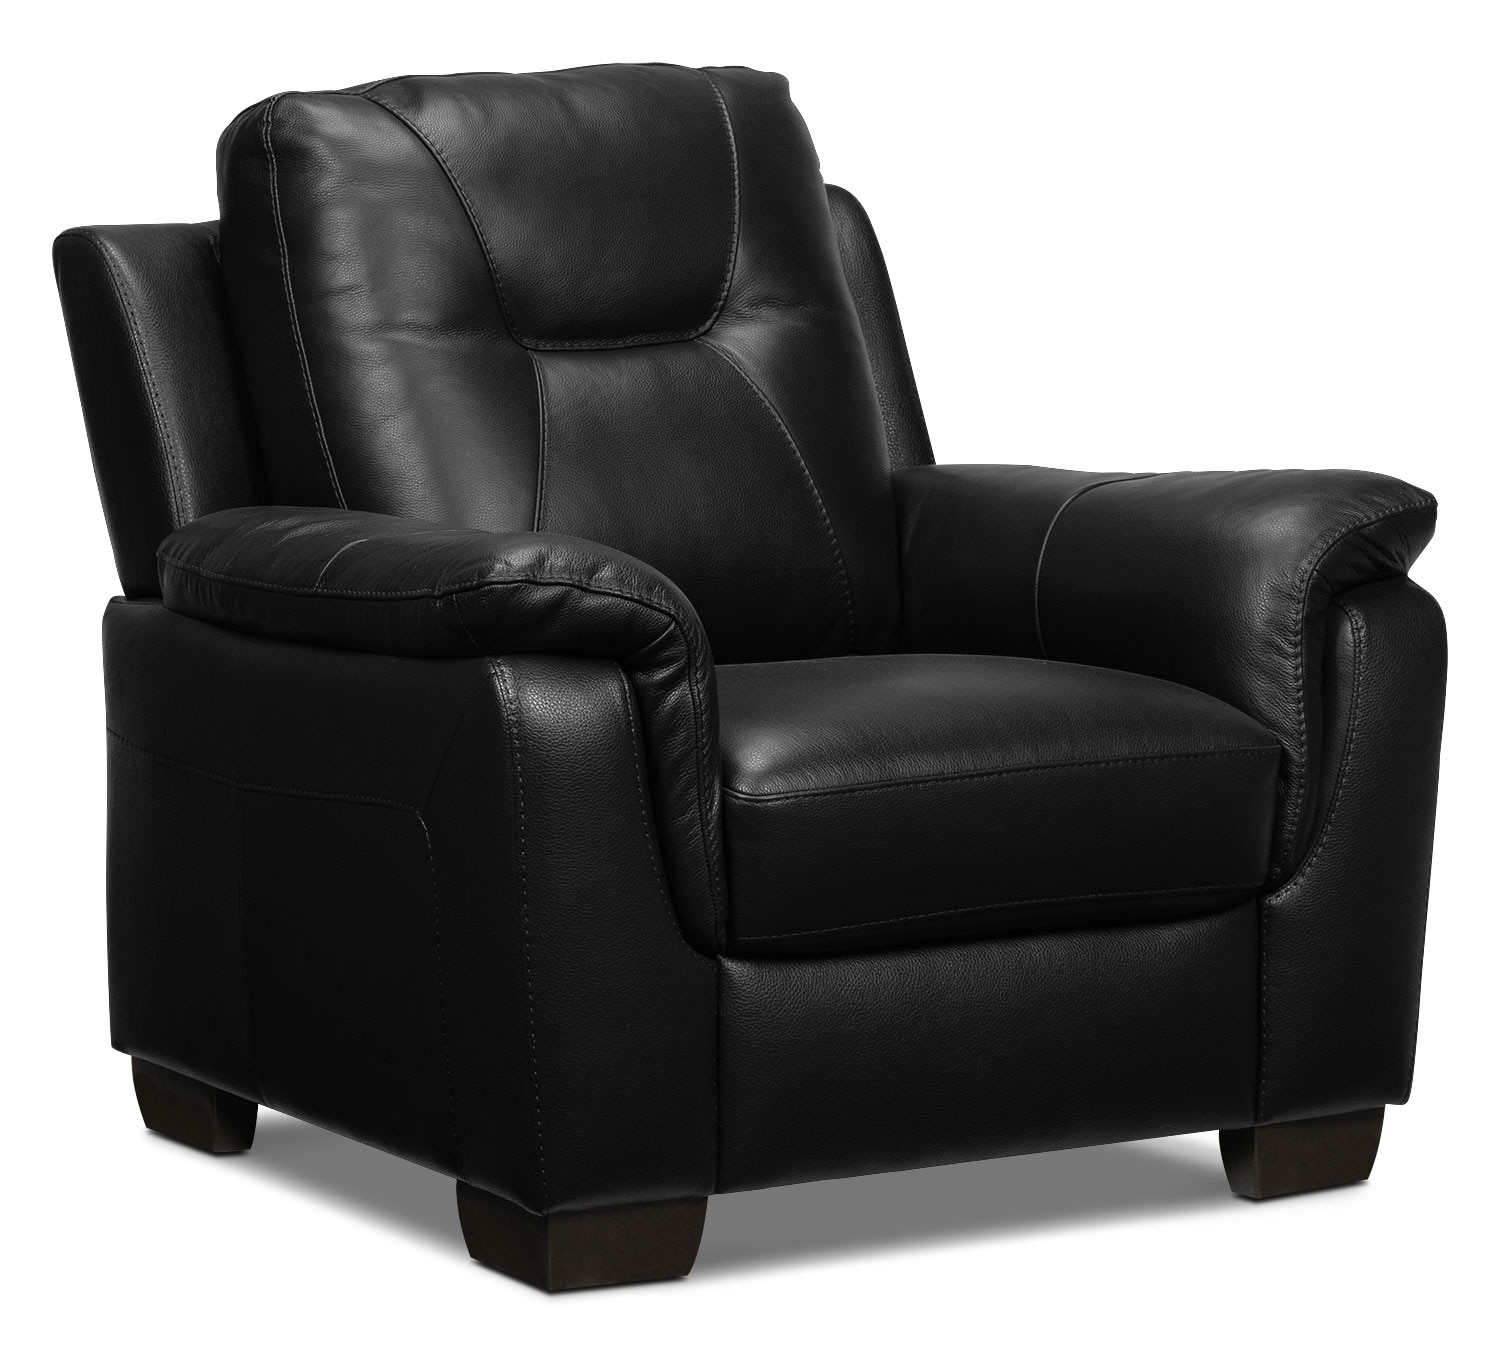 Living Room Furniture - Dalia Chair - Black